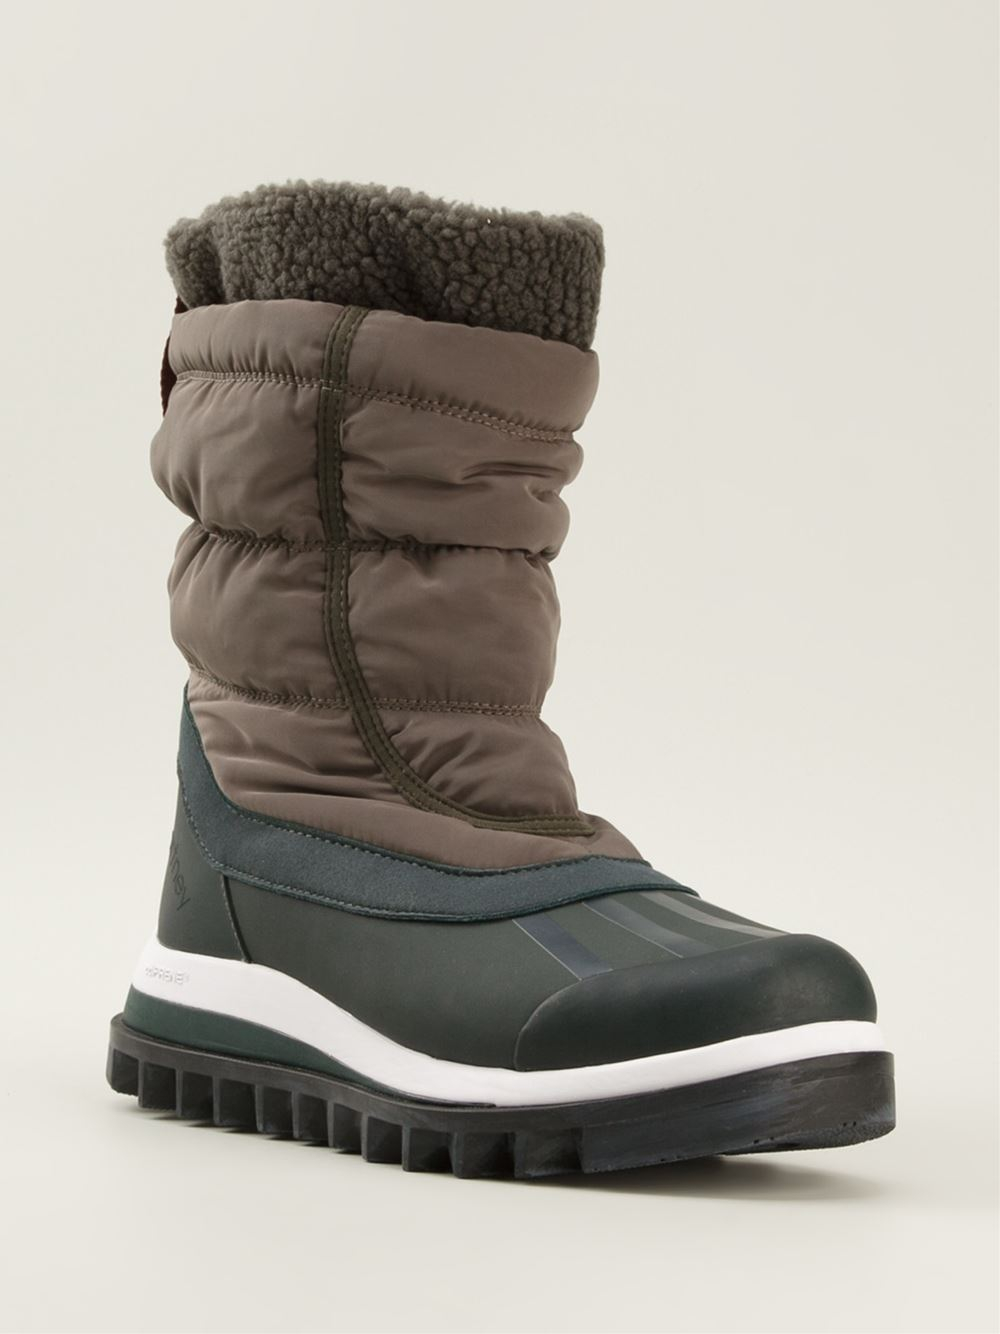 Lyst Adidas By Stella Mccartney Snow Boots In Green